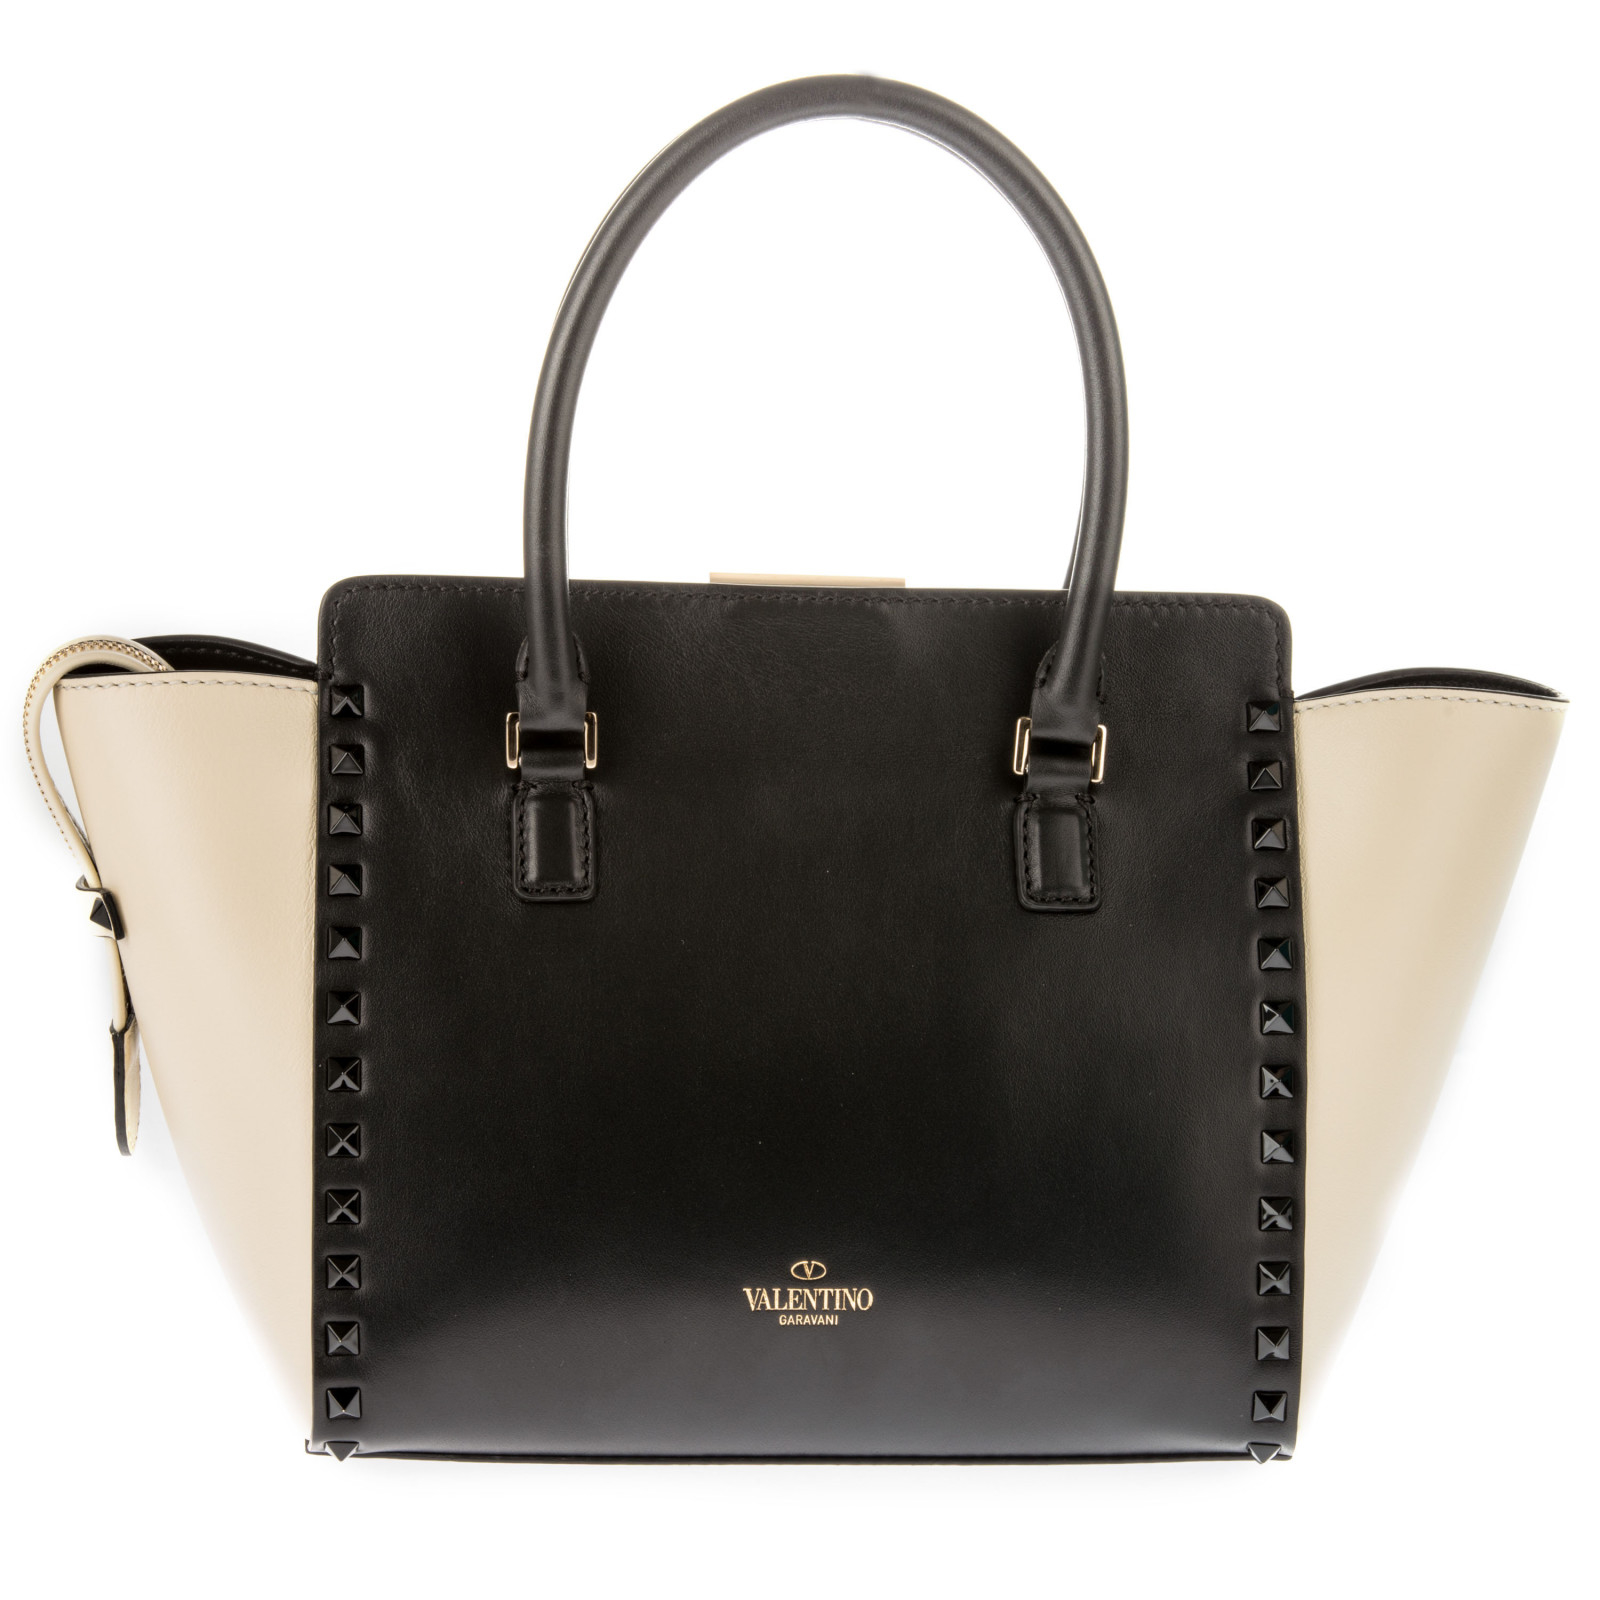 Valentino   Black And White Leather Handle Bag   Lyst